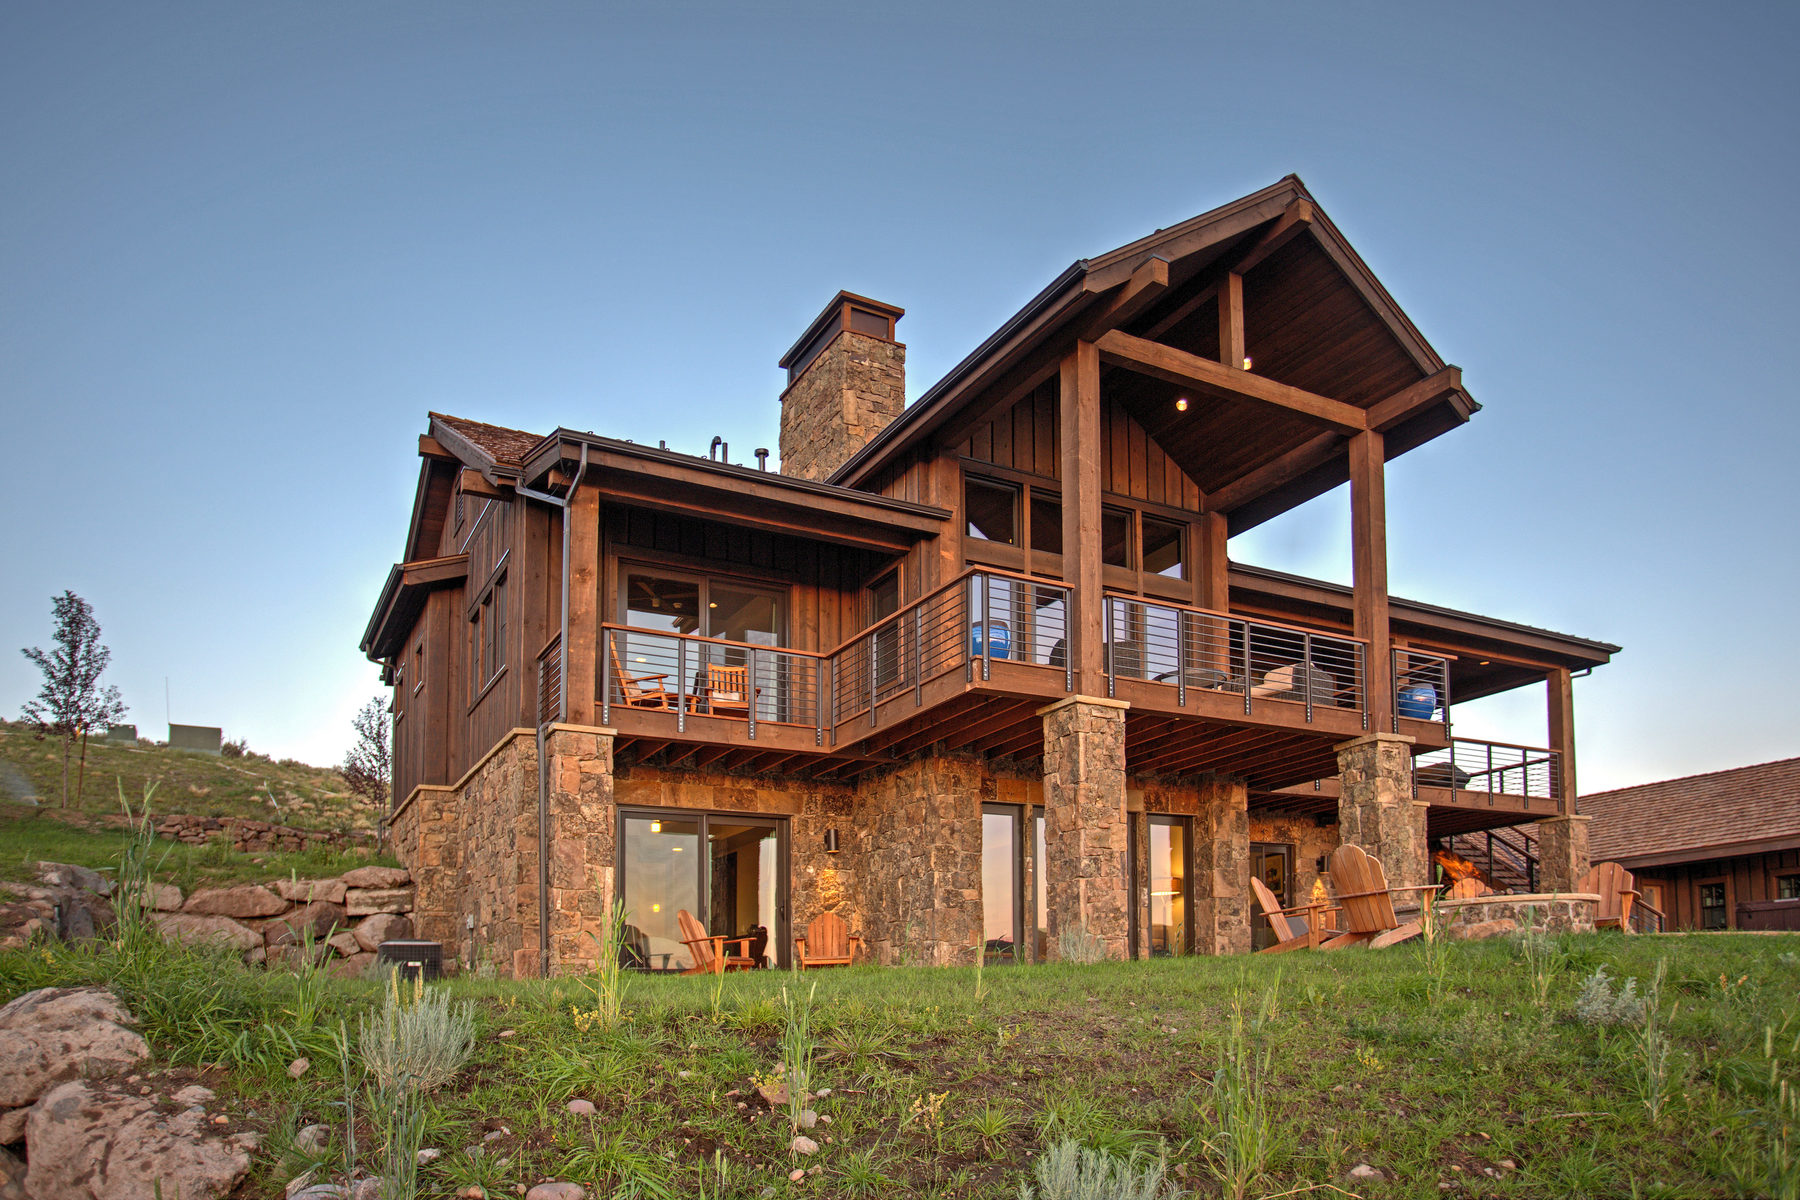 Casa Unifamiliar por un Venta en Juniper Cabin with Spectacular Views 7049 N Rees Jones Way #171 Heber City, Utah, 84032 Estados Unidos